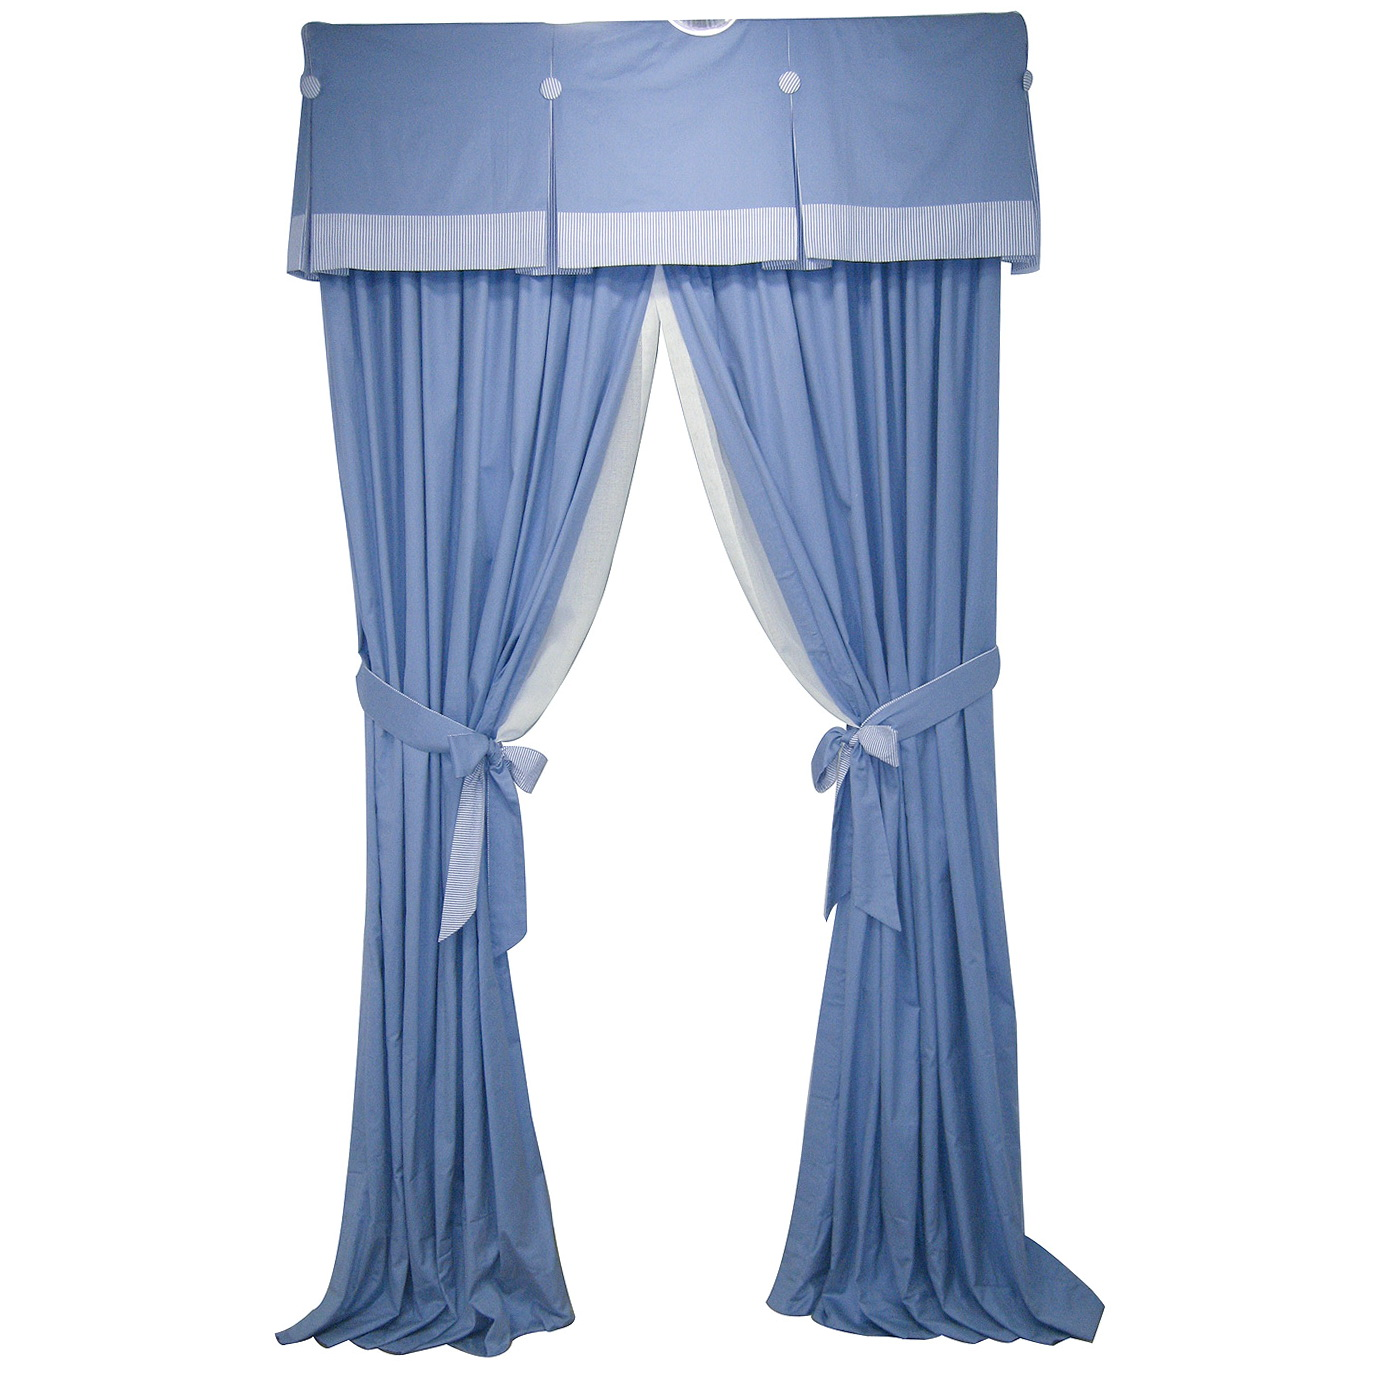 Where Can I Buy Curtains In Calgary